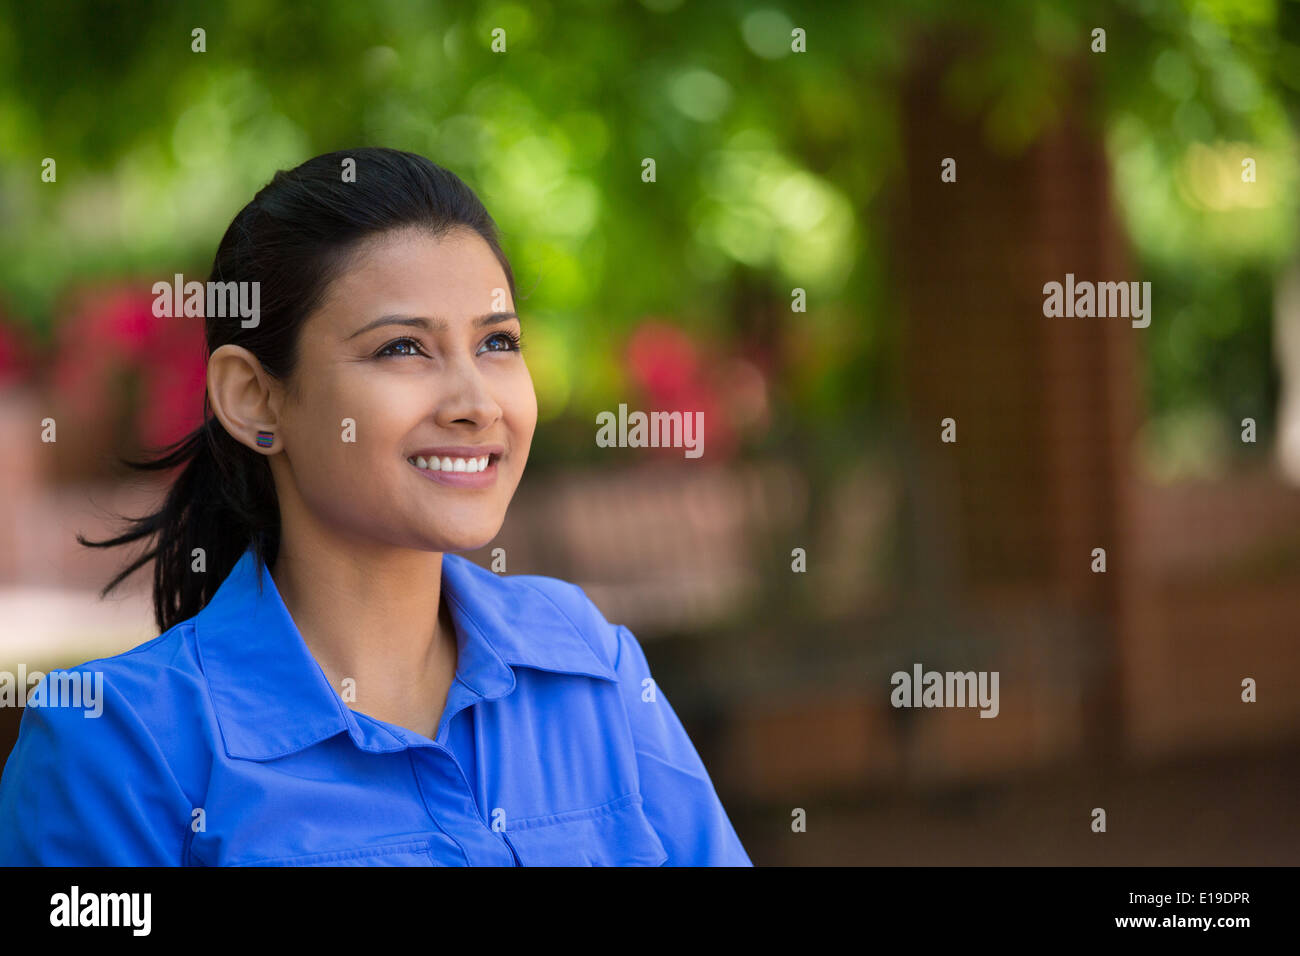 Daydreaming in park - Stock Image